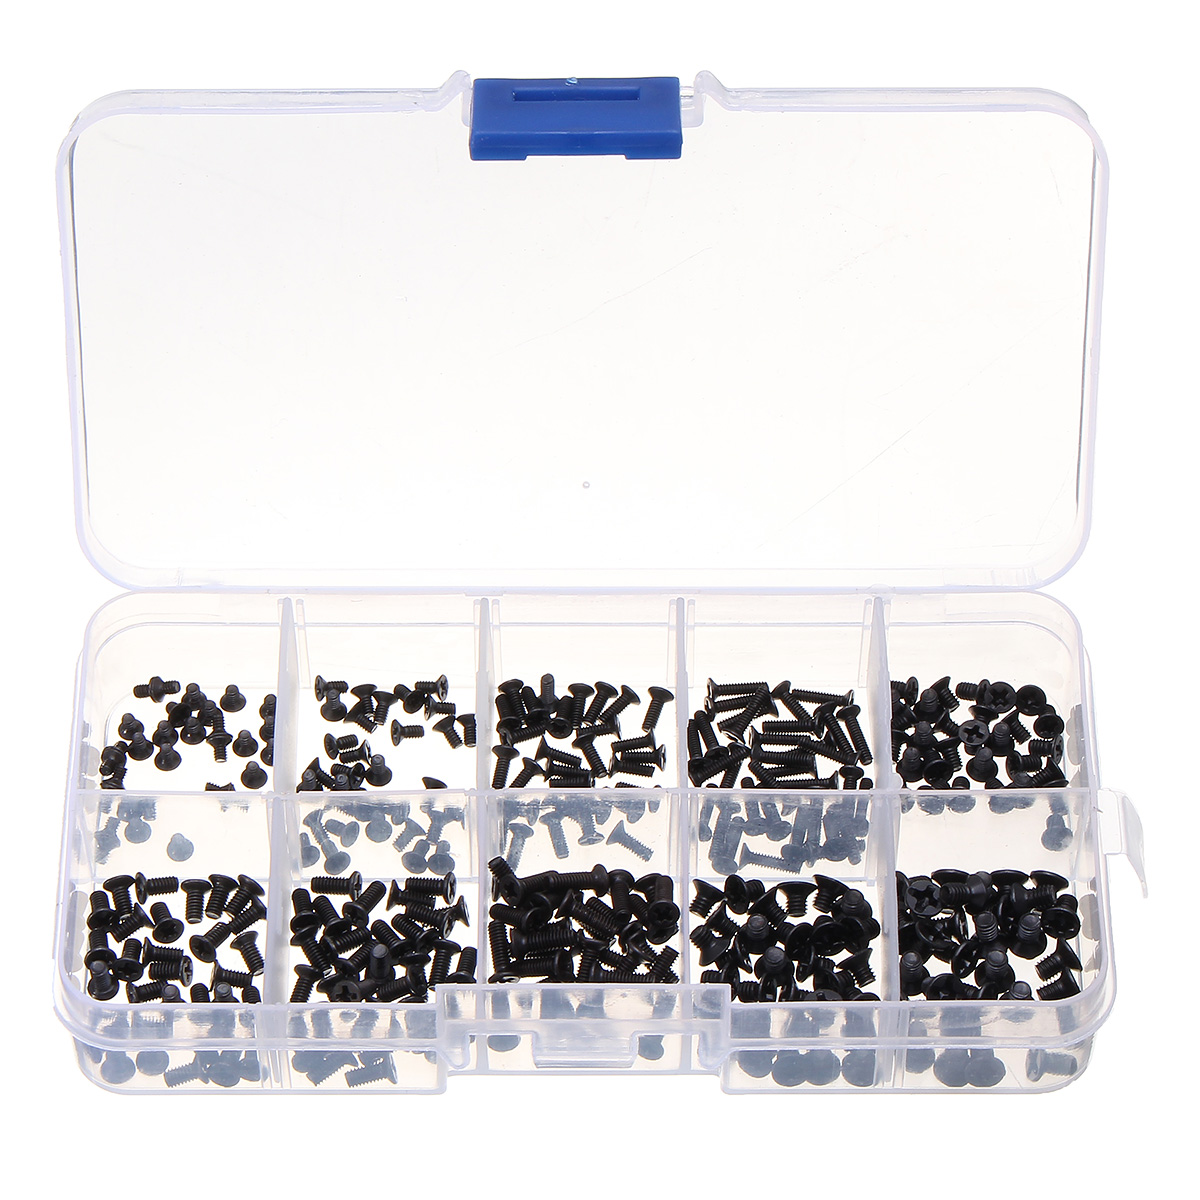 300Pcs M2/M2.5/M3 Laptop Screws Box Set for HP Lenovo SAMSUNG IBM